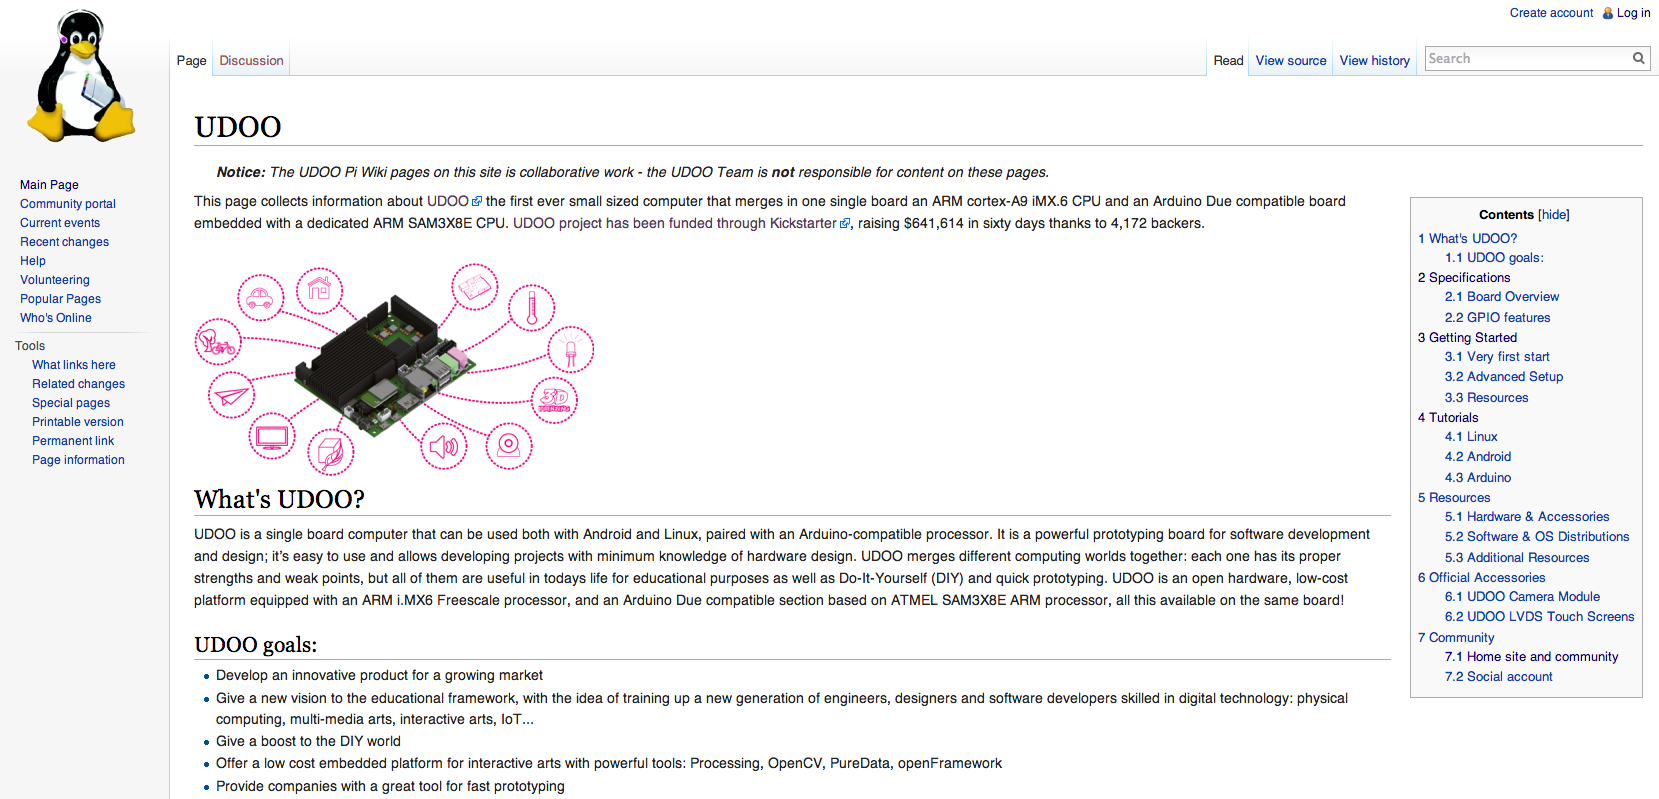 UDOO_wiki